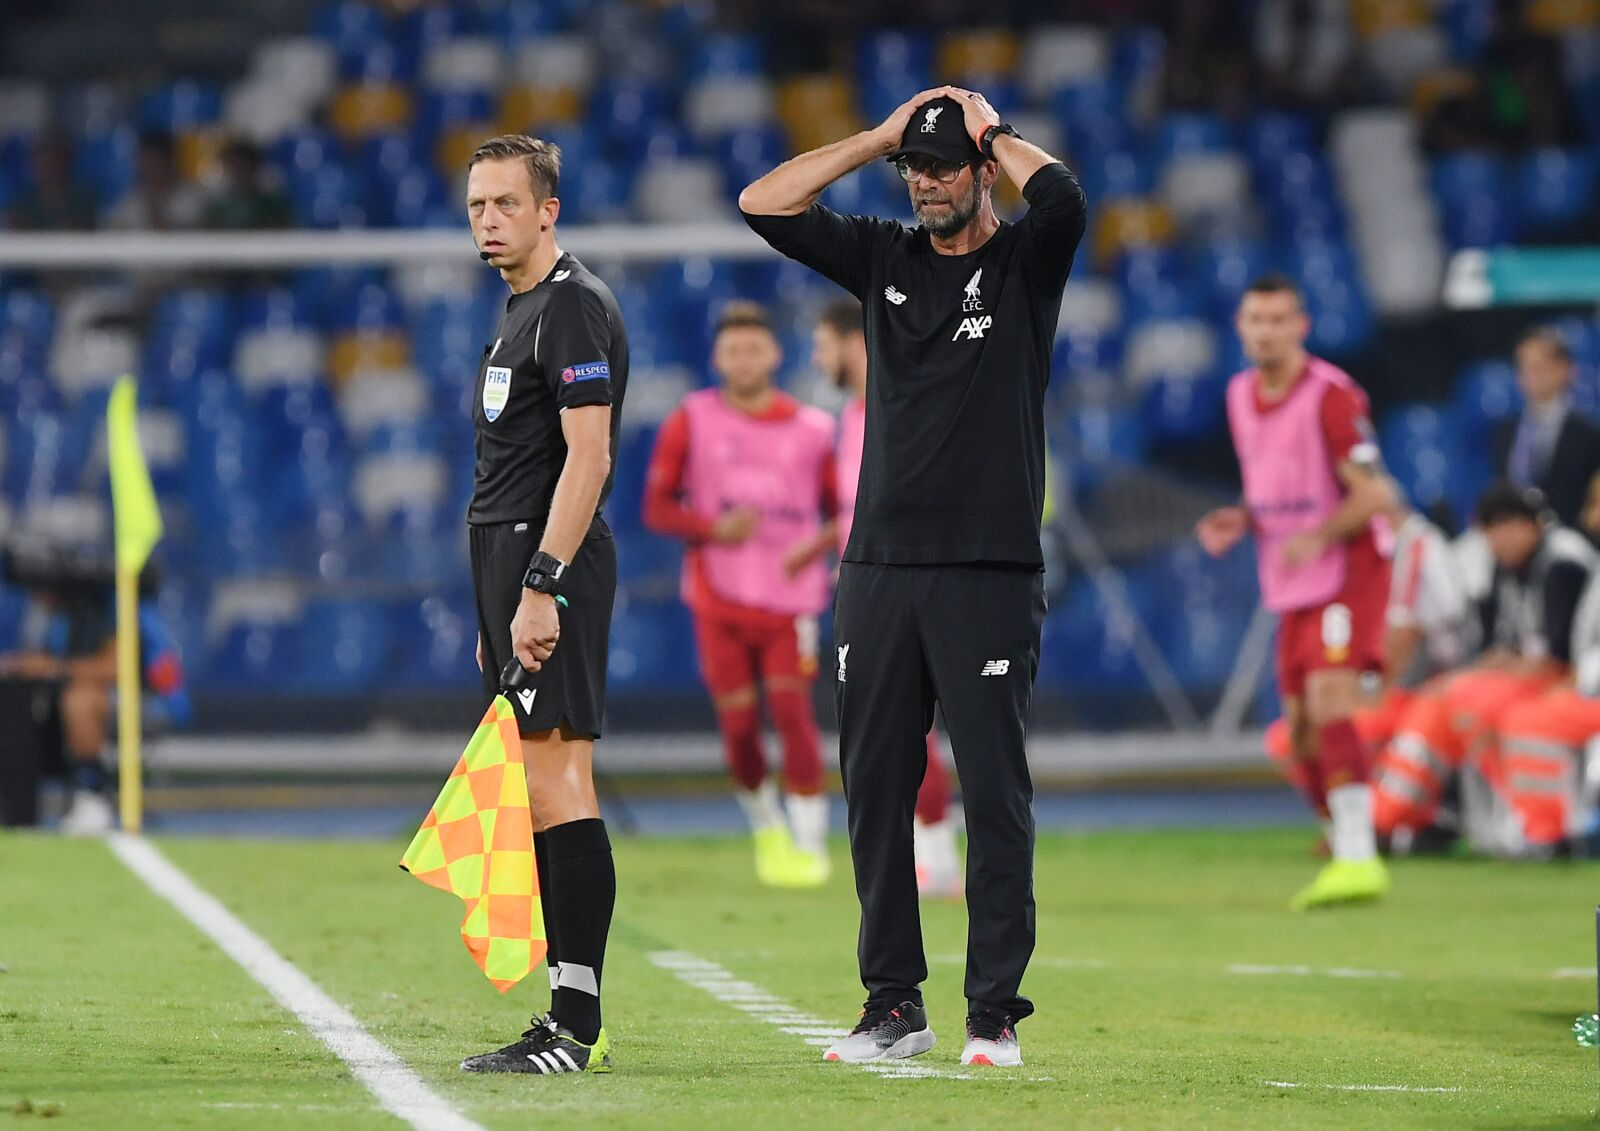 Liverpool's failure against Napoli is not too worrying for Jurgen Klopp